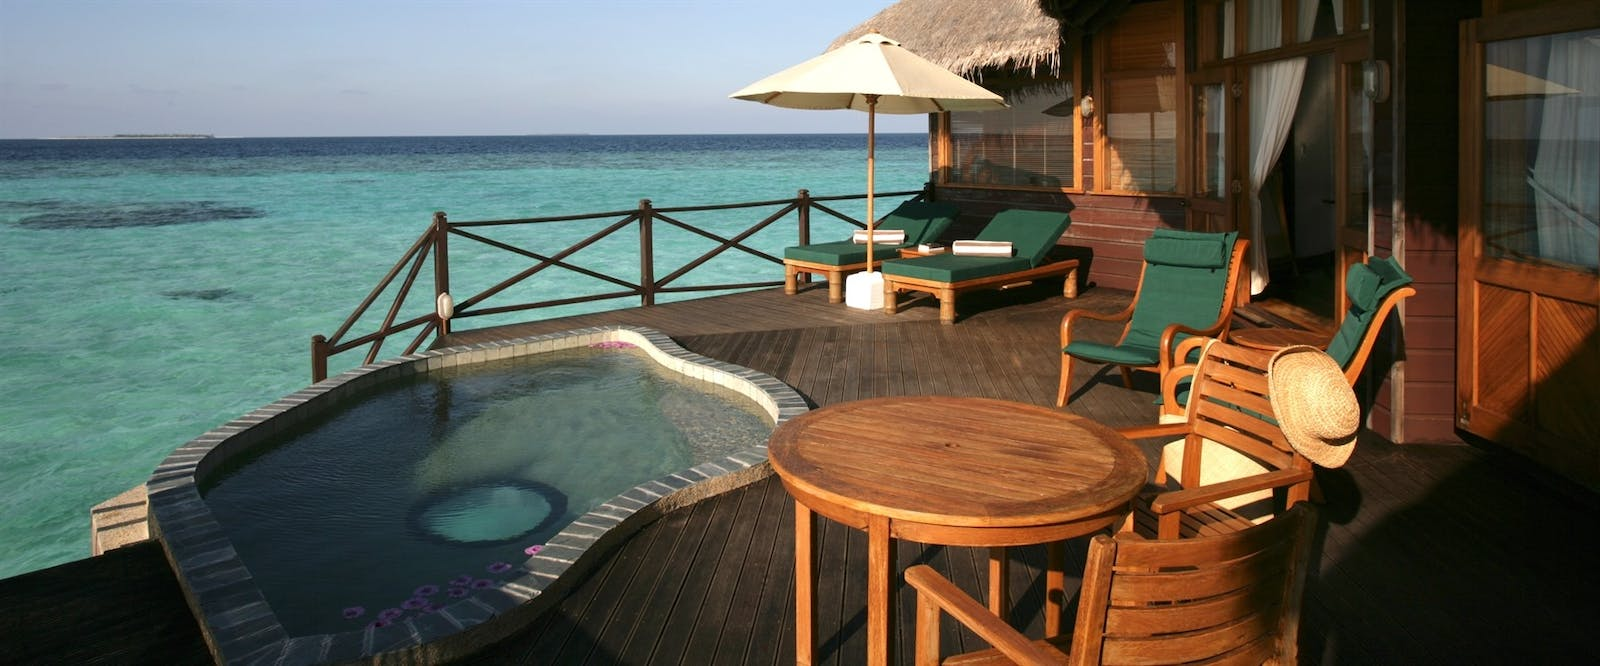 Sunset Lagoon Villa at Coco Palm Dhuni Kolhu, Maldives, Indian Ocean